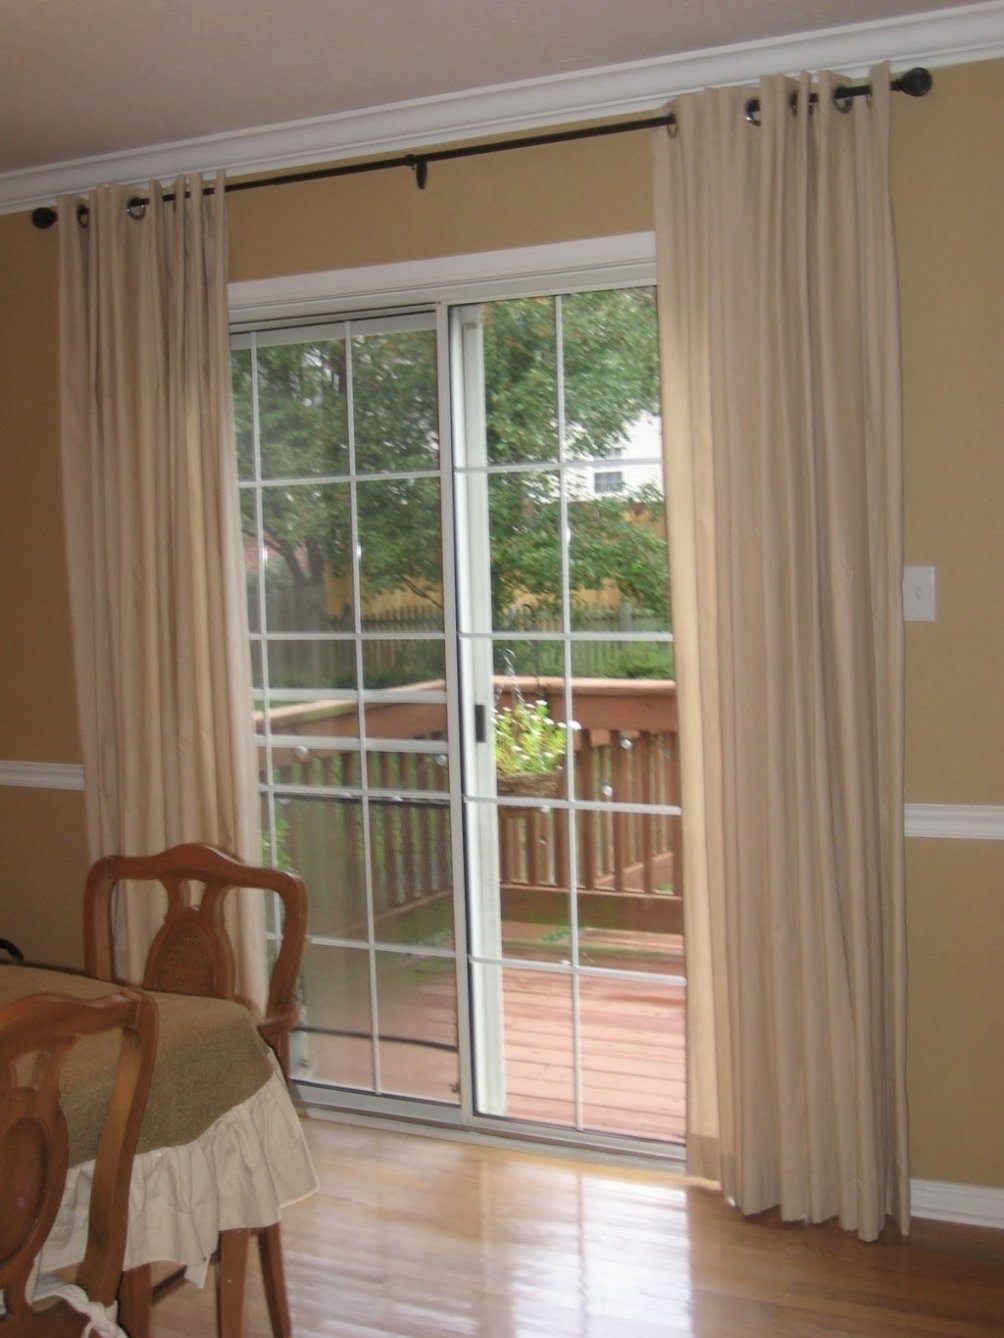 10 Beautiful Ideas For Sliding Glass Doors curtain patio door curtain ideas patio door coverings sliding 2020